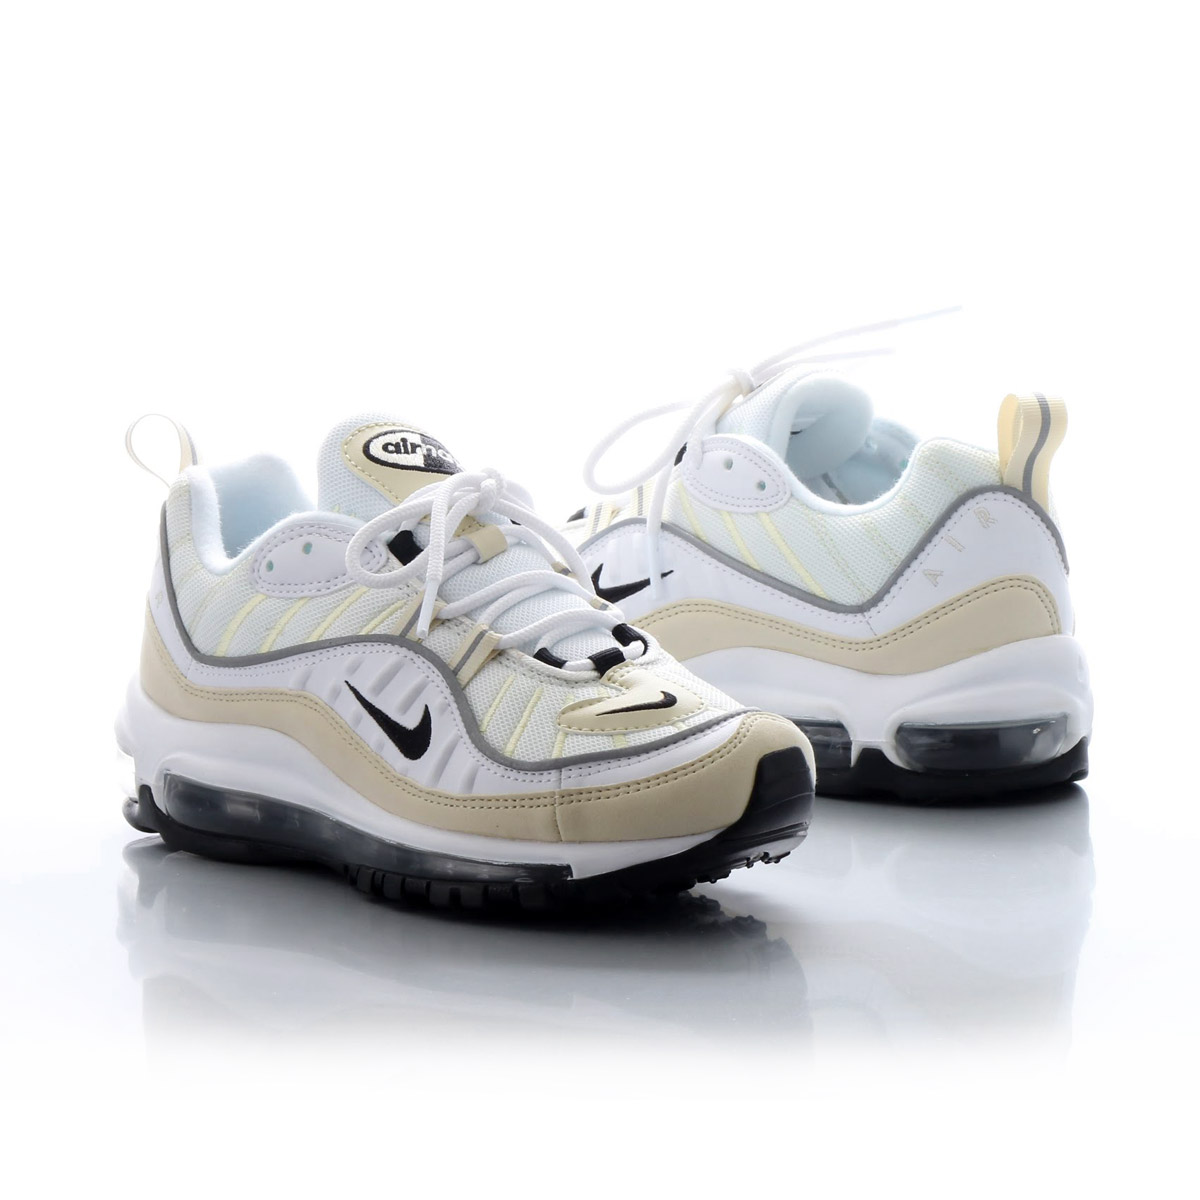 lowest price 329b3 433ae NIKE W AIR MAX 98 (Nike women Air Max 98) (WHITE BLACK-FOSSIL-REFLECT  SILVER)